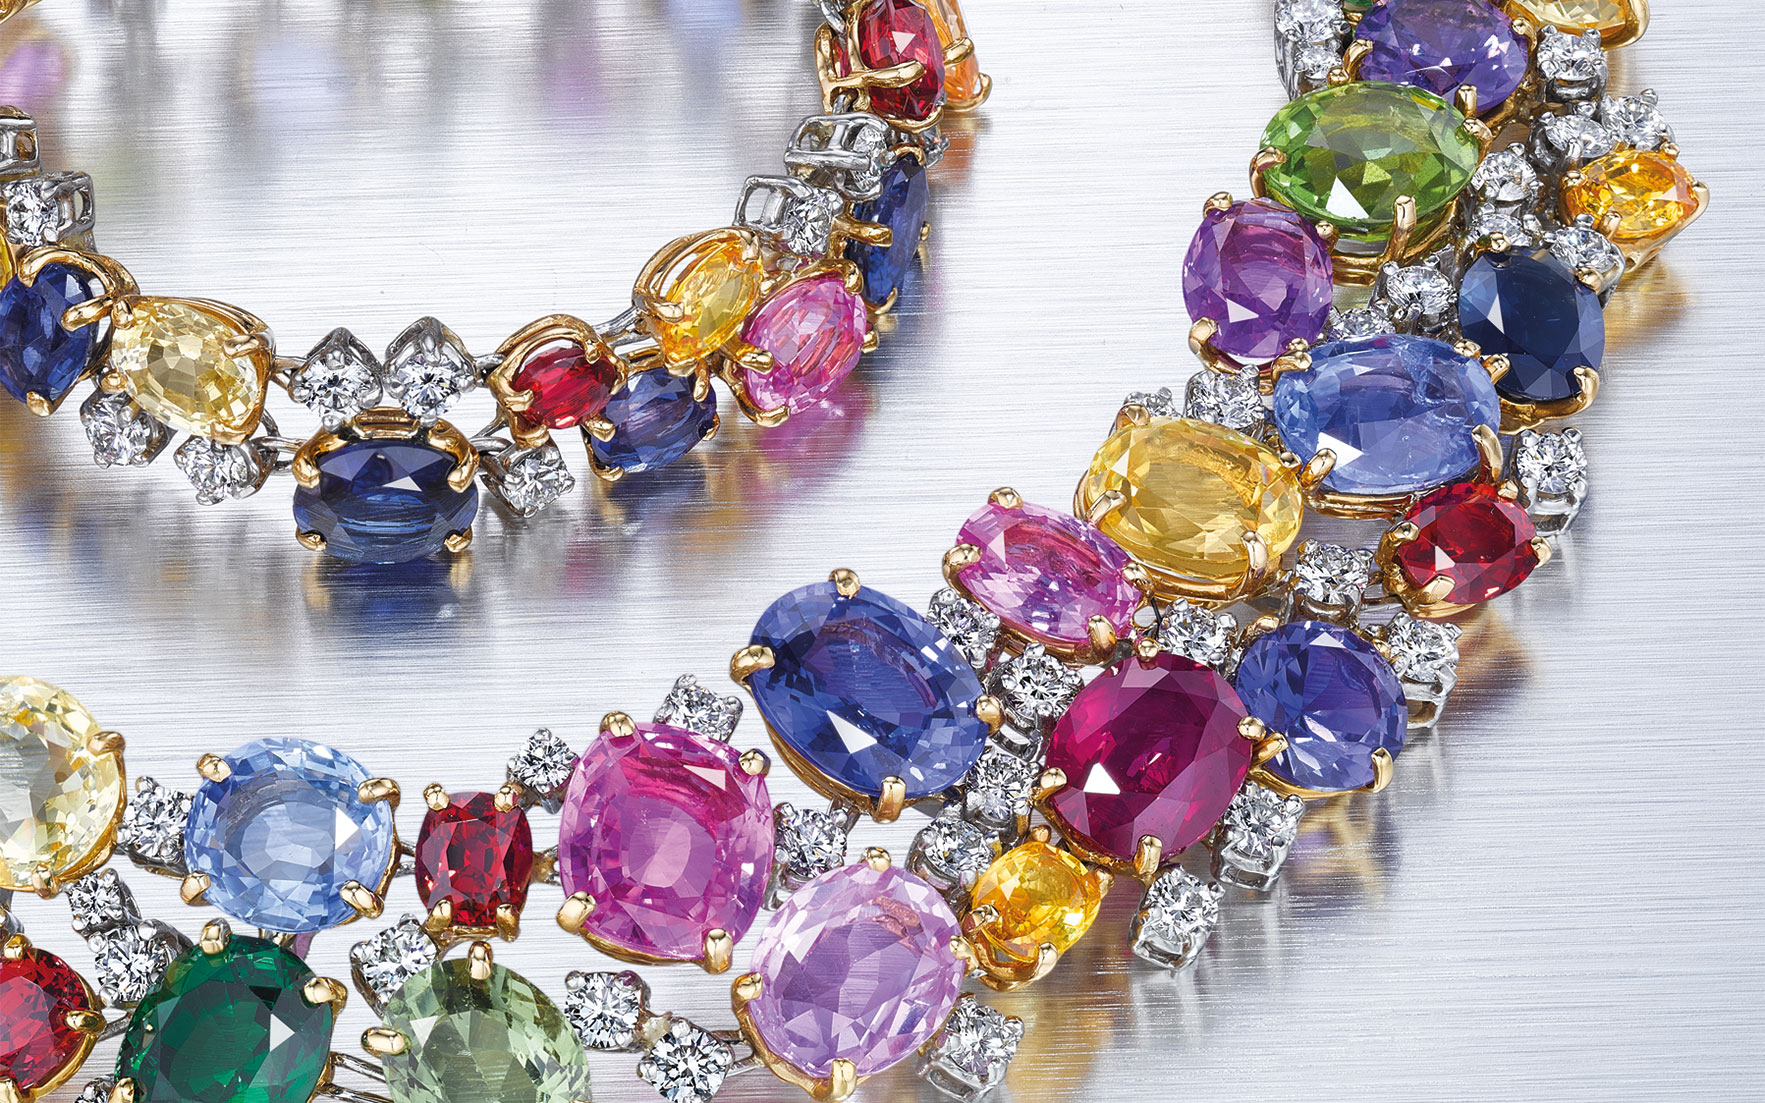 An expert's guide to signedje auction at Christies